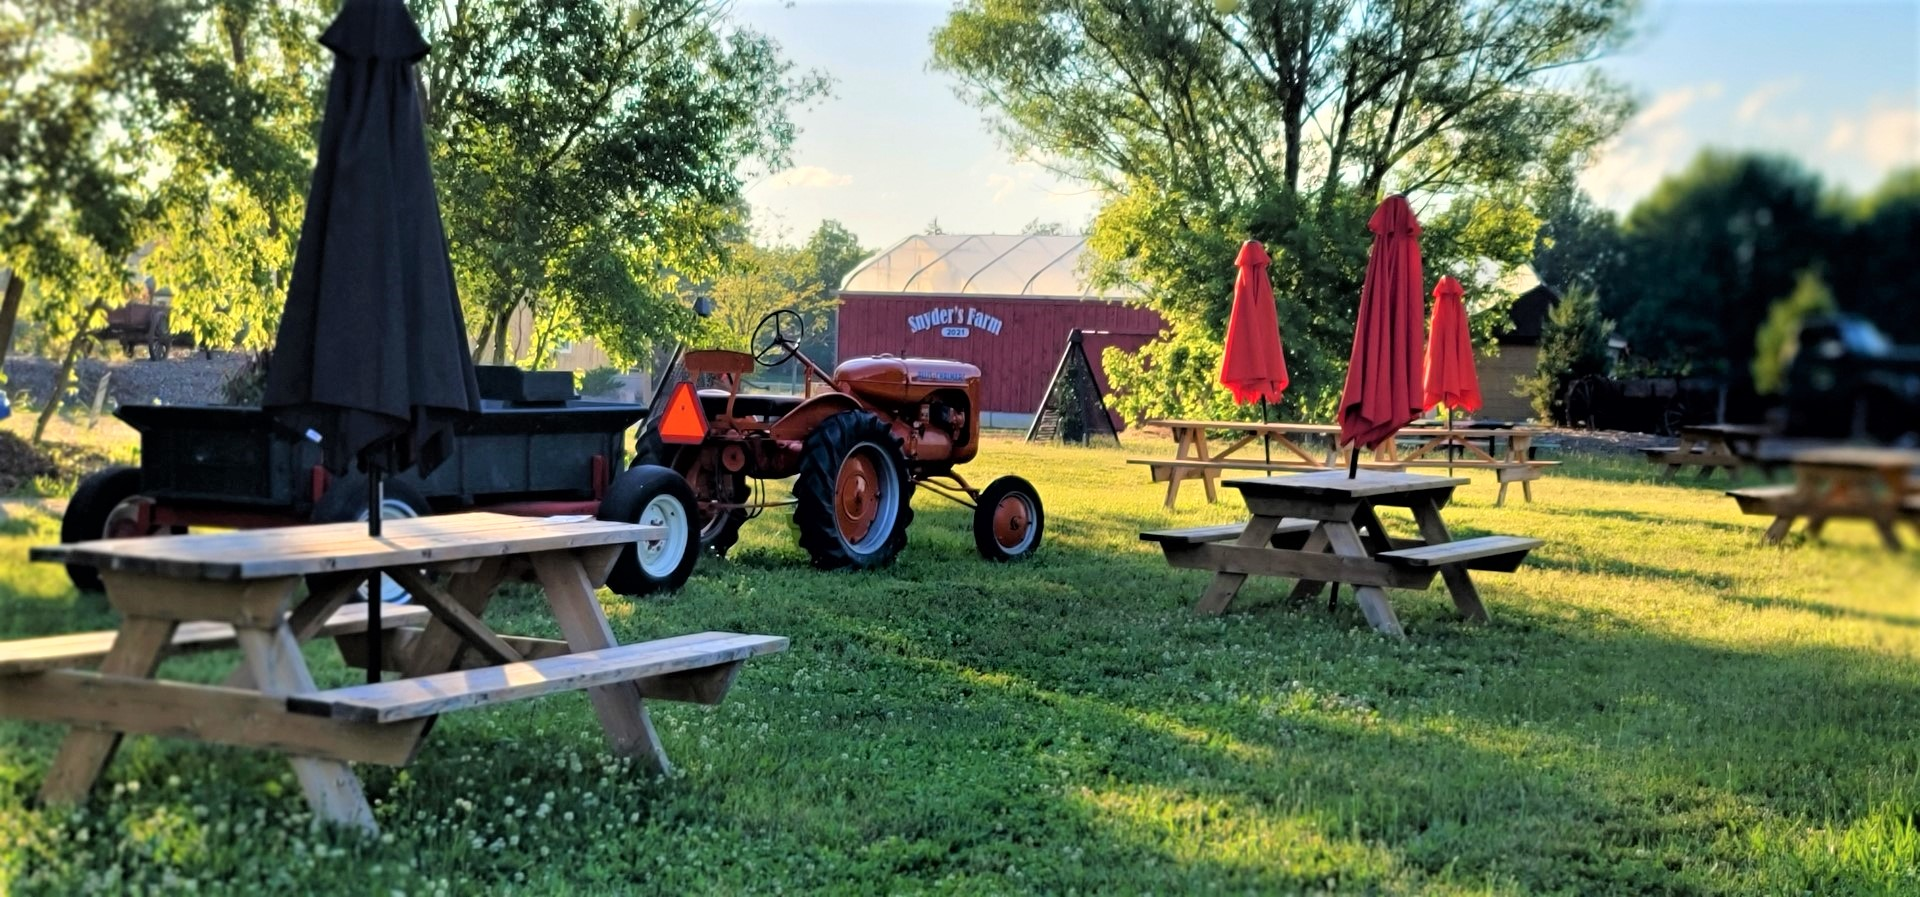 Snyder's Farm barn with tractor and picnic tables at sunset